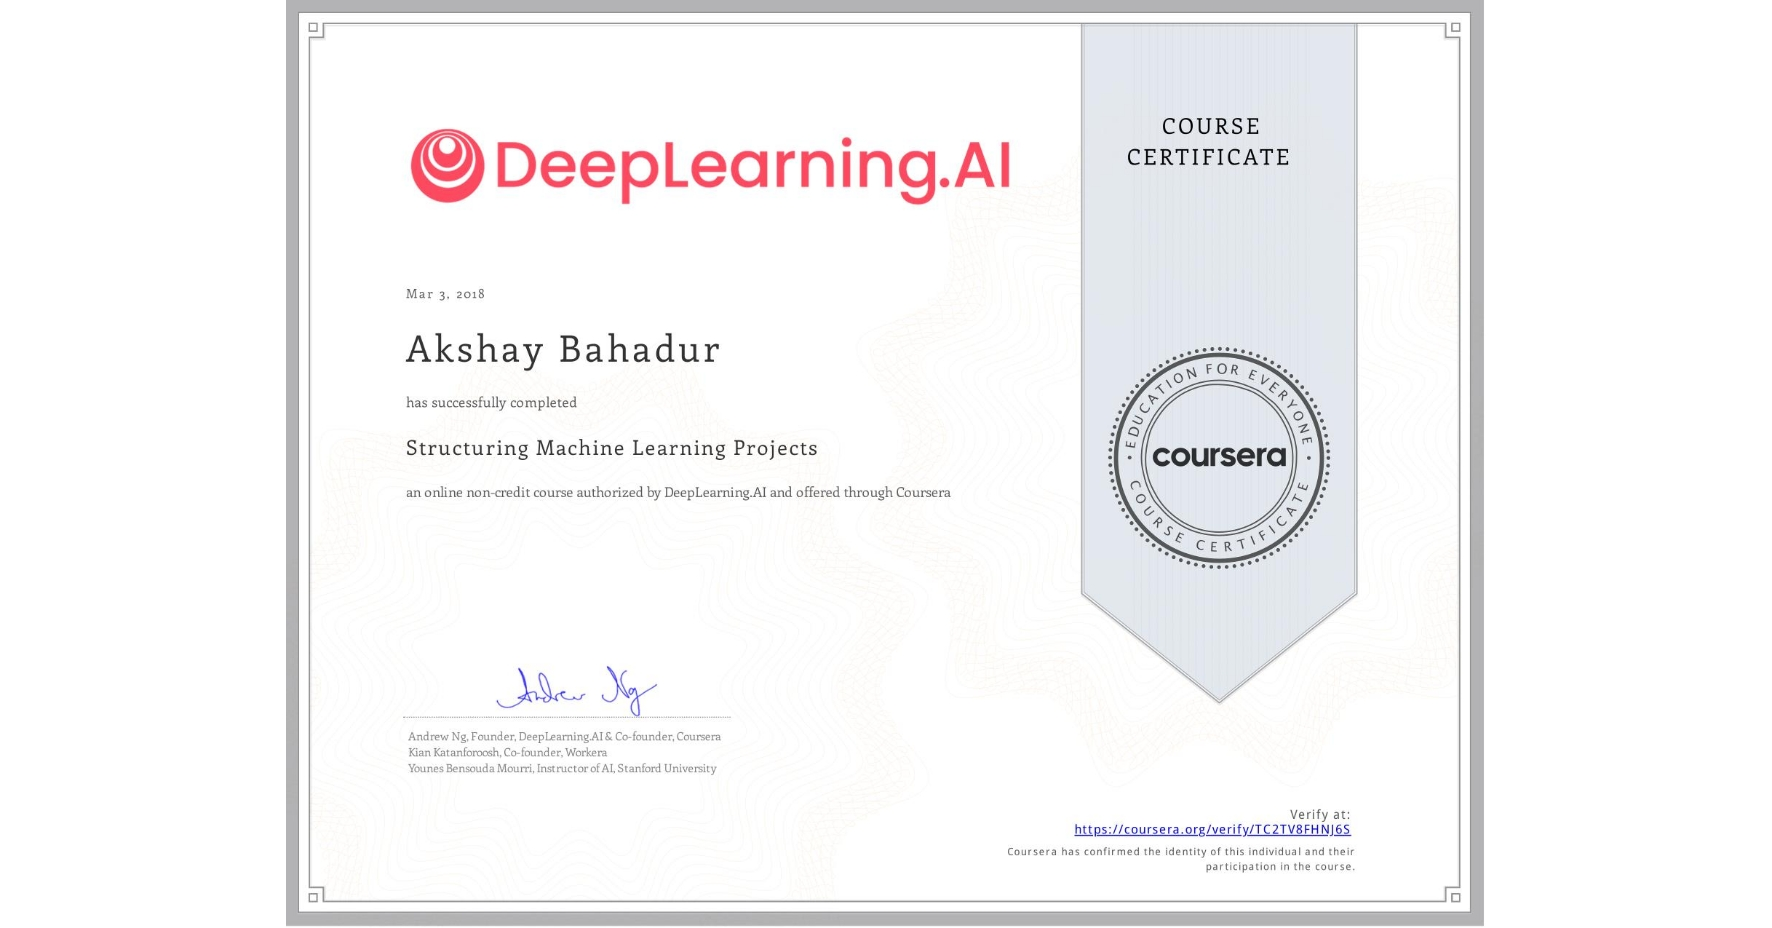 View certificate for Akshay Bahadur, Structuring Machine Learning Projects, an online non-credit course authorized by DeepLearning.AI and offered through Coursera